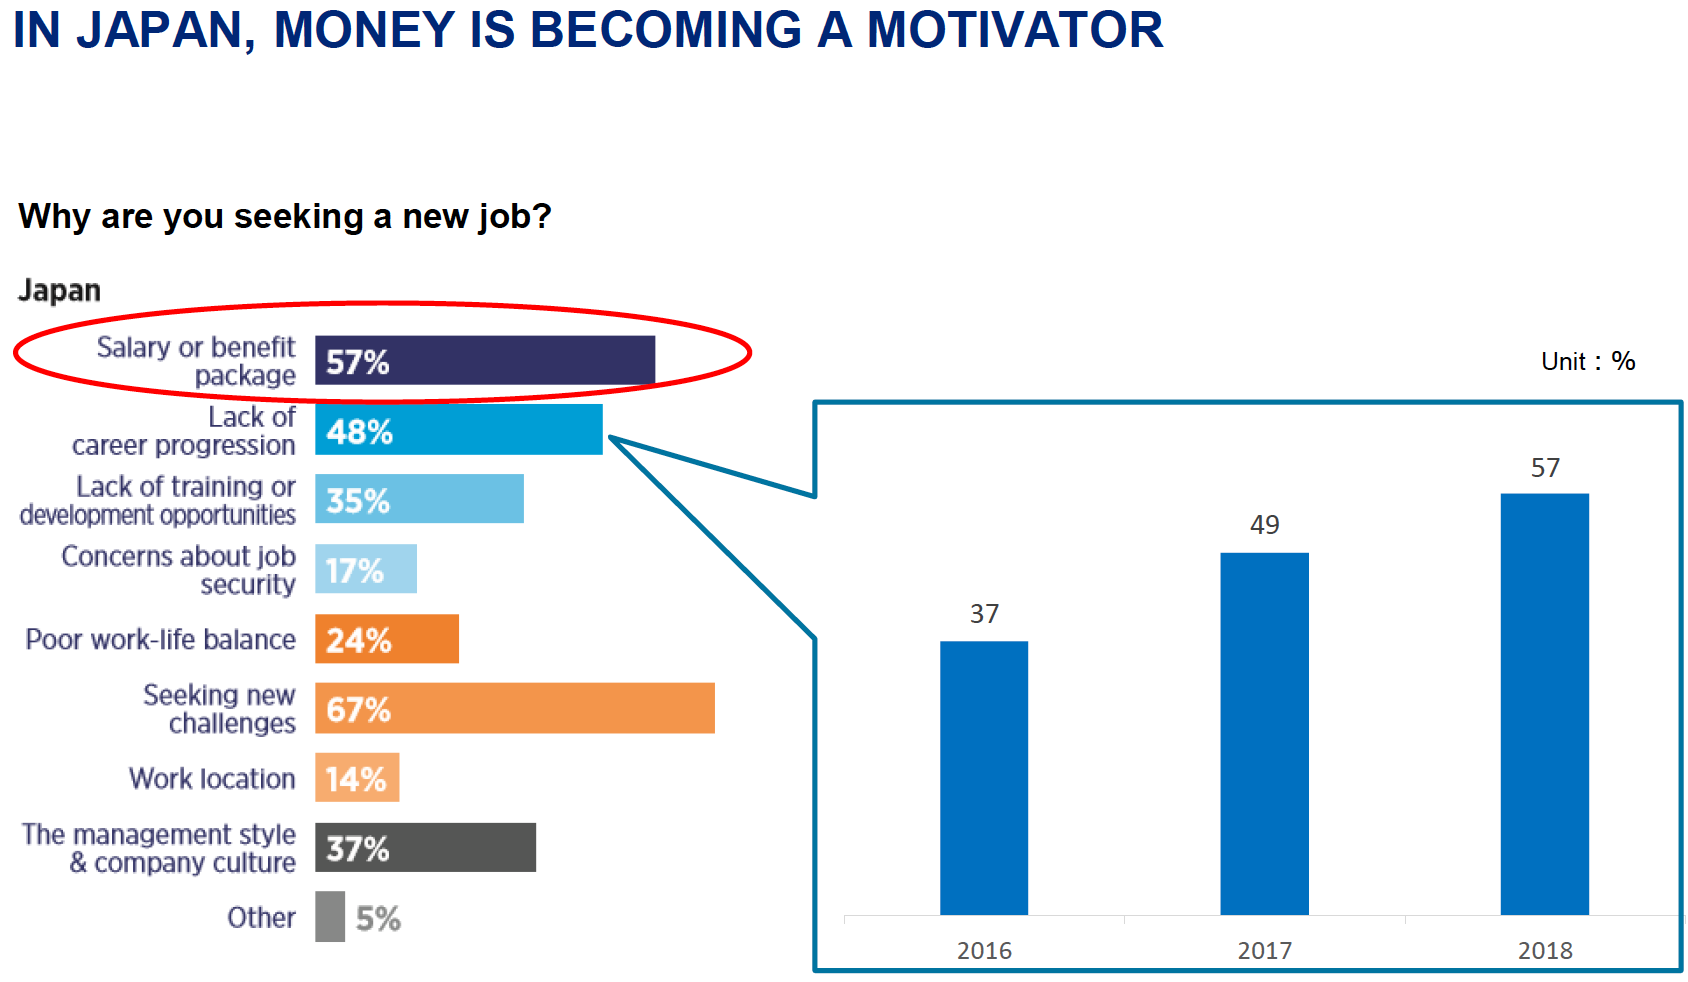 Hays Salary Guide - Money Motivates